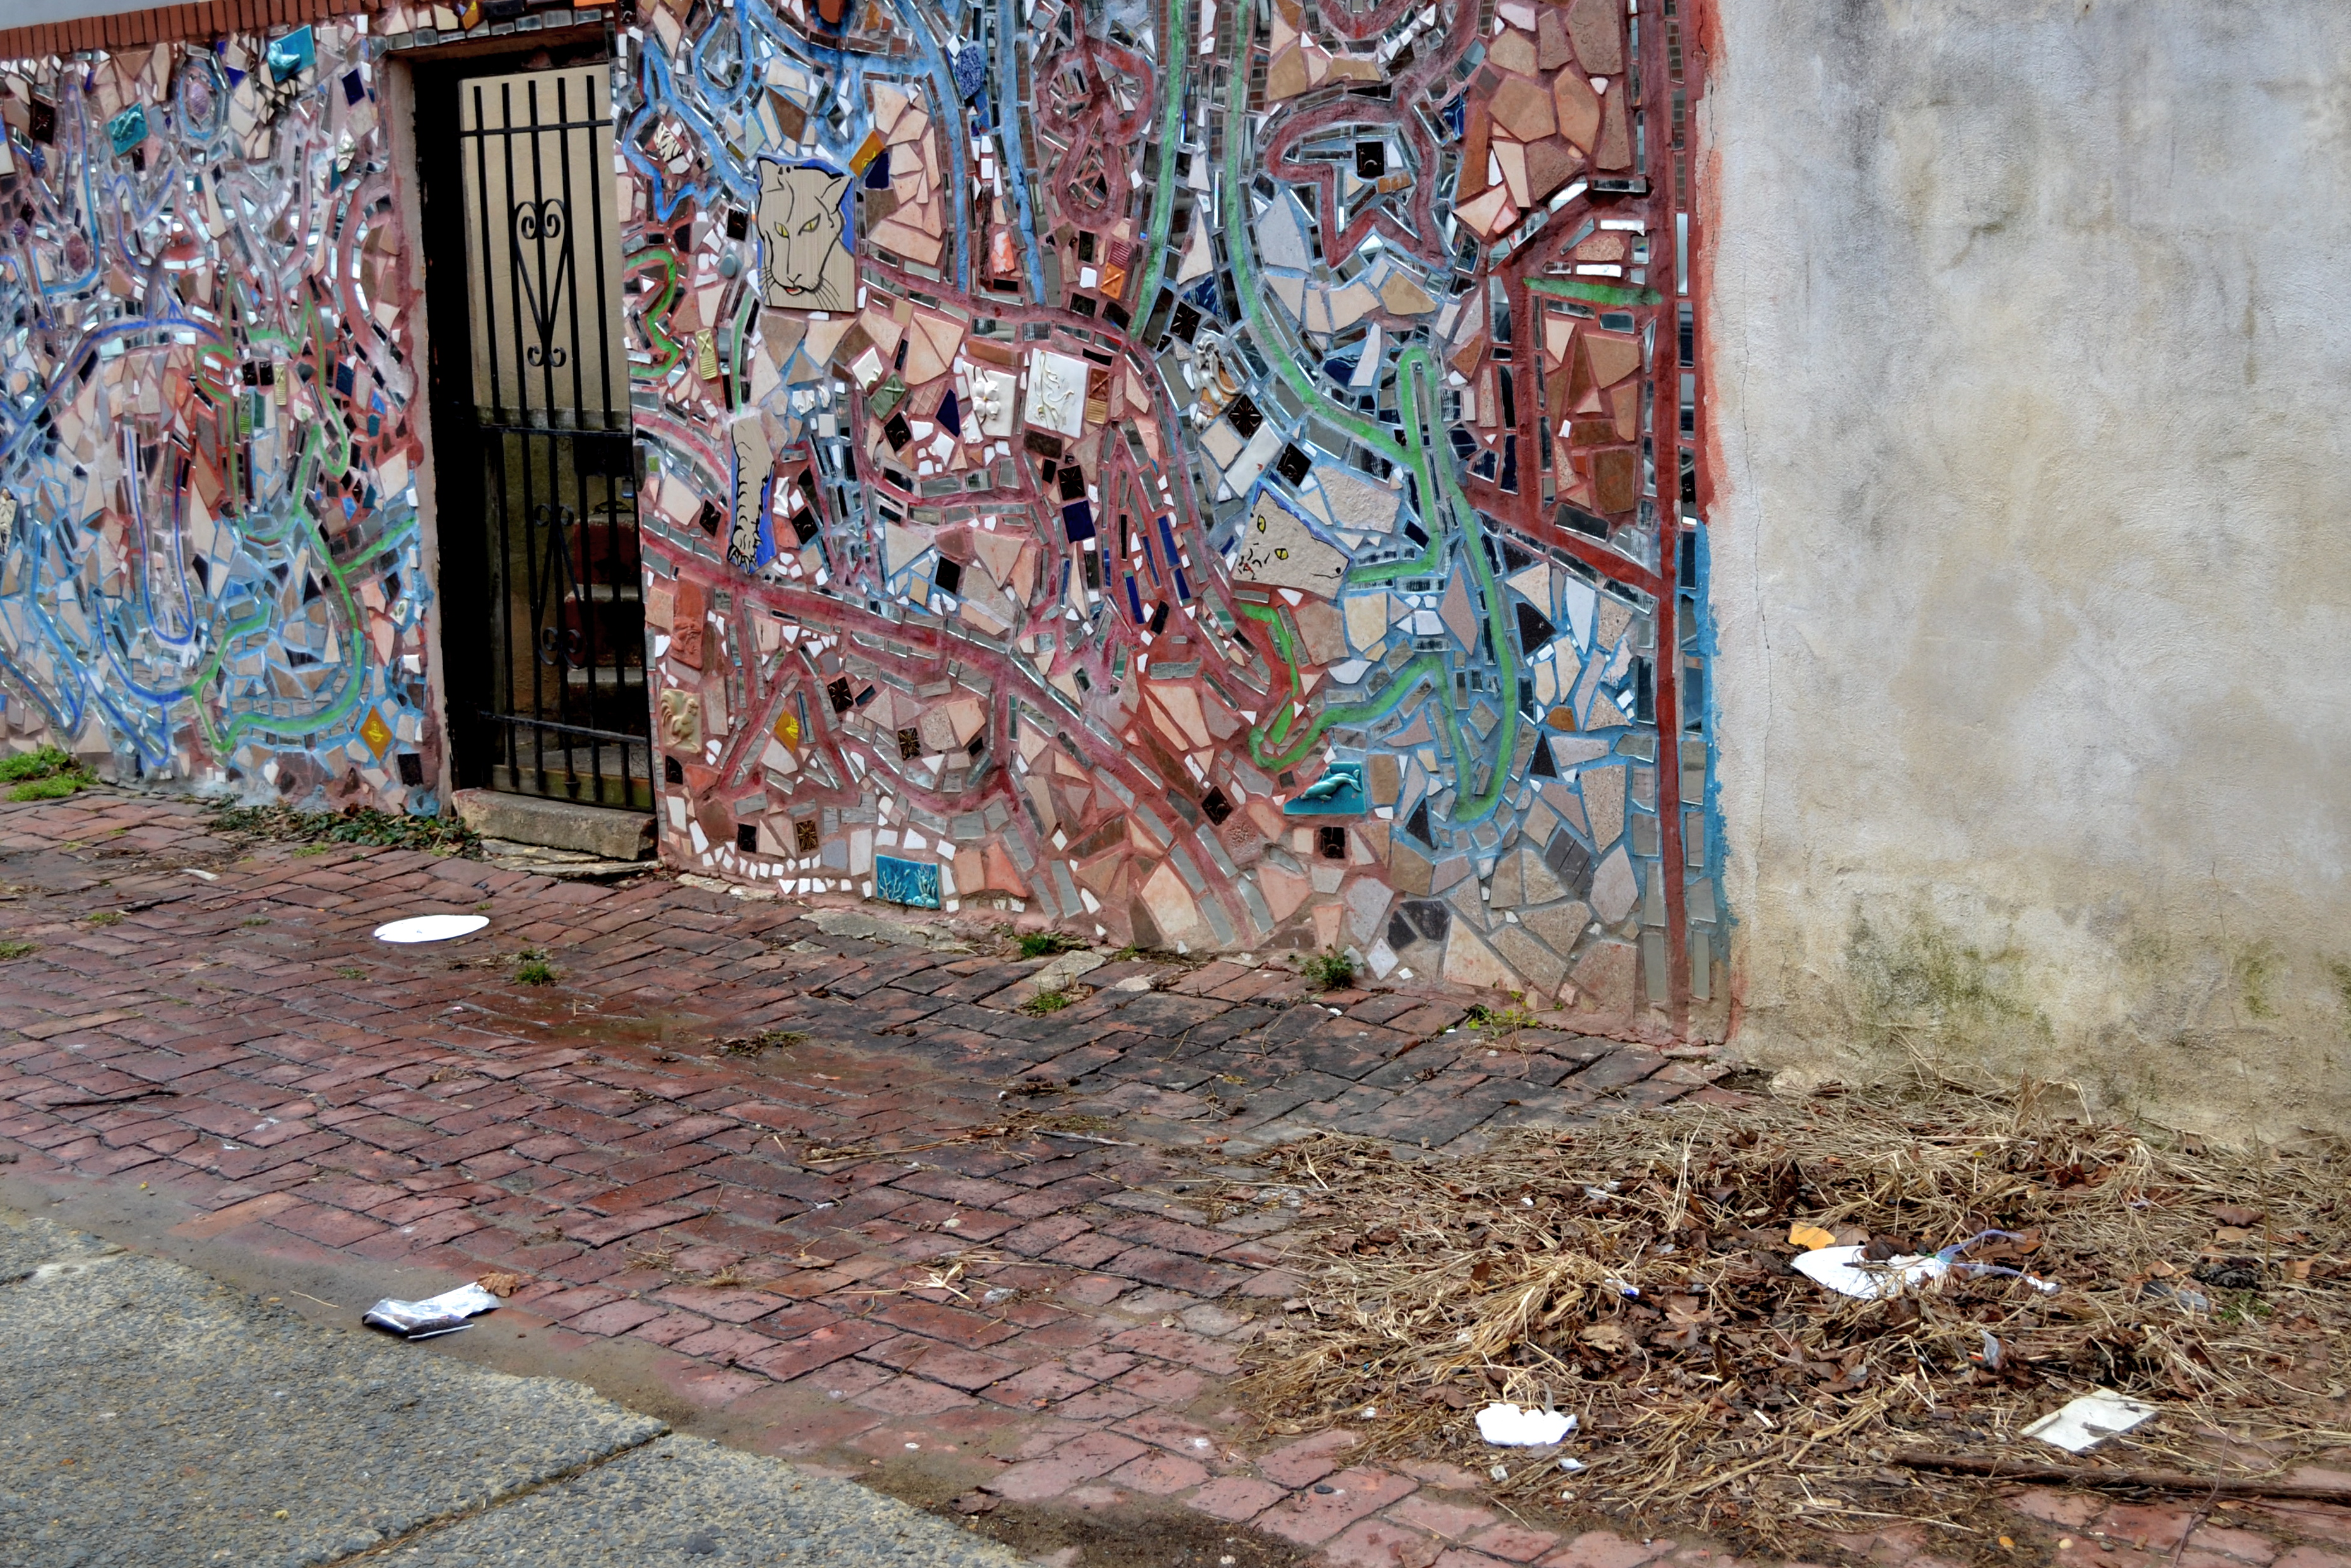 Trash litters the street in front of a South Philly mosaic